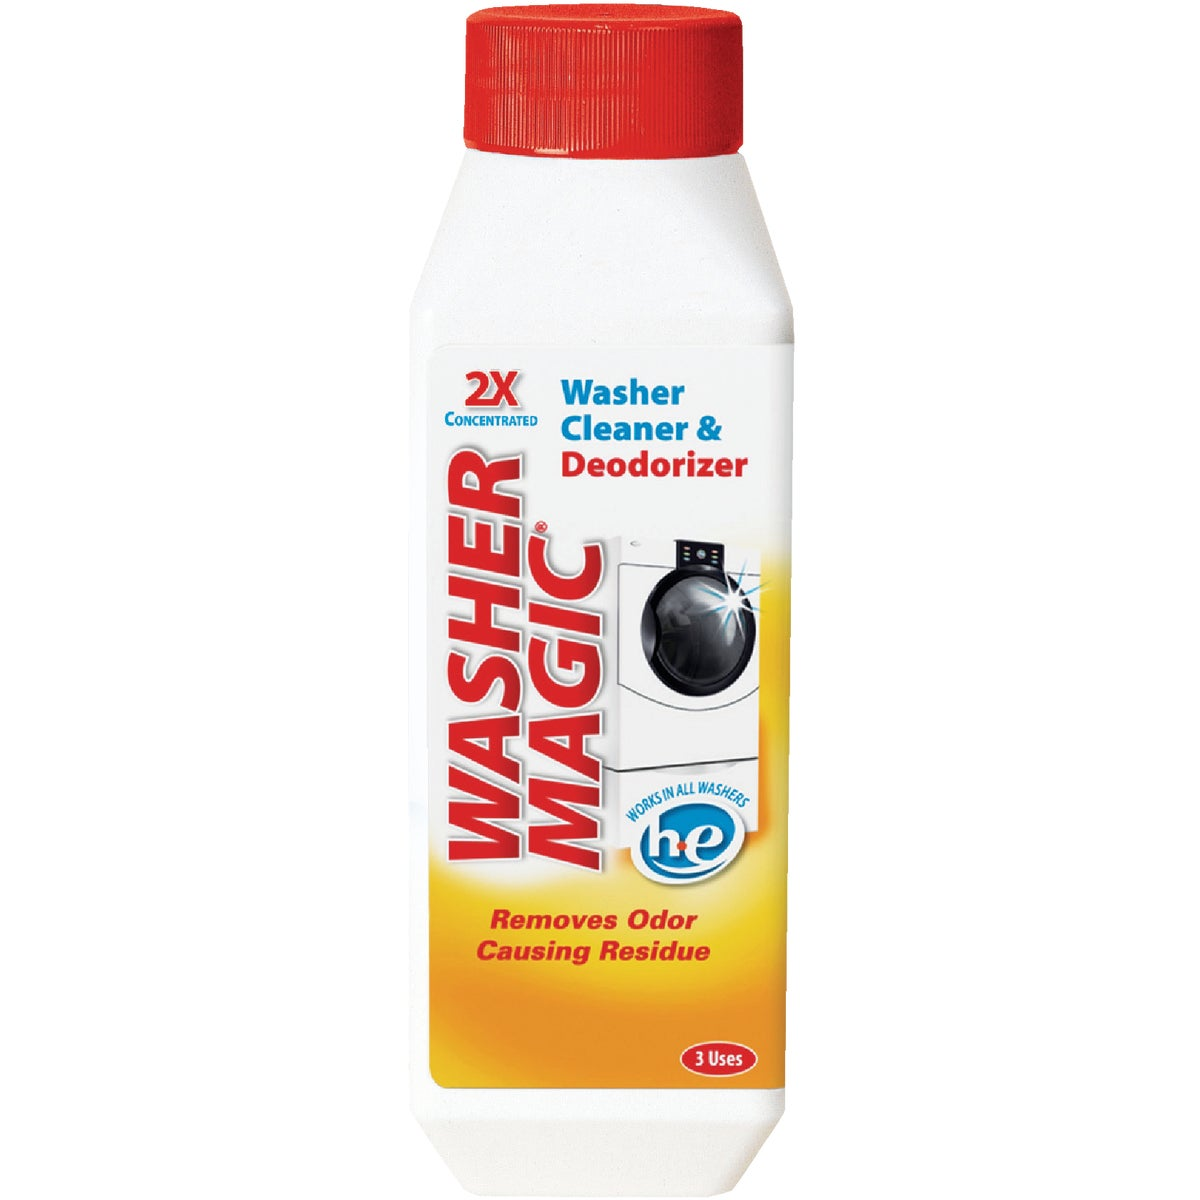 12Oz Washer Cleaner